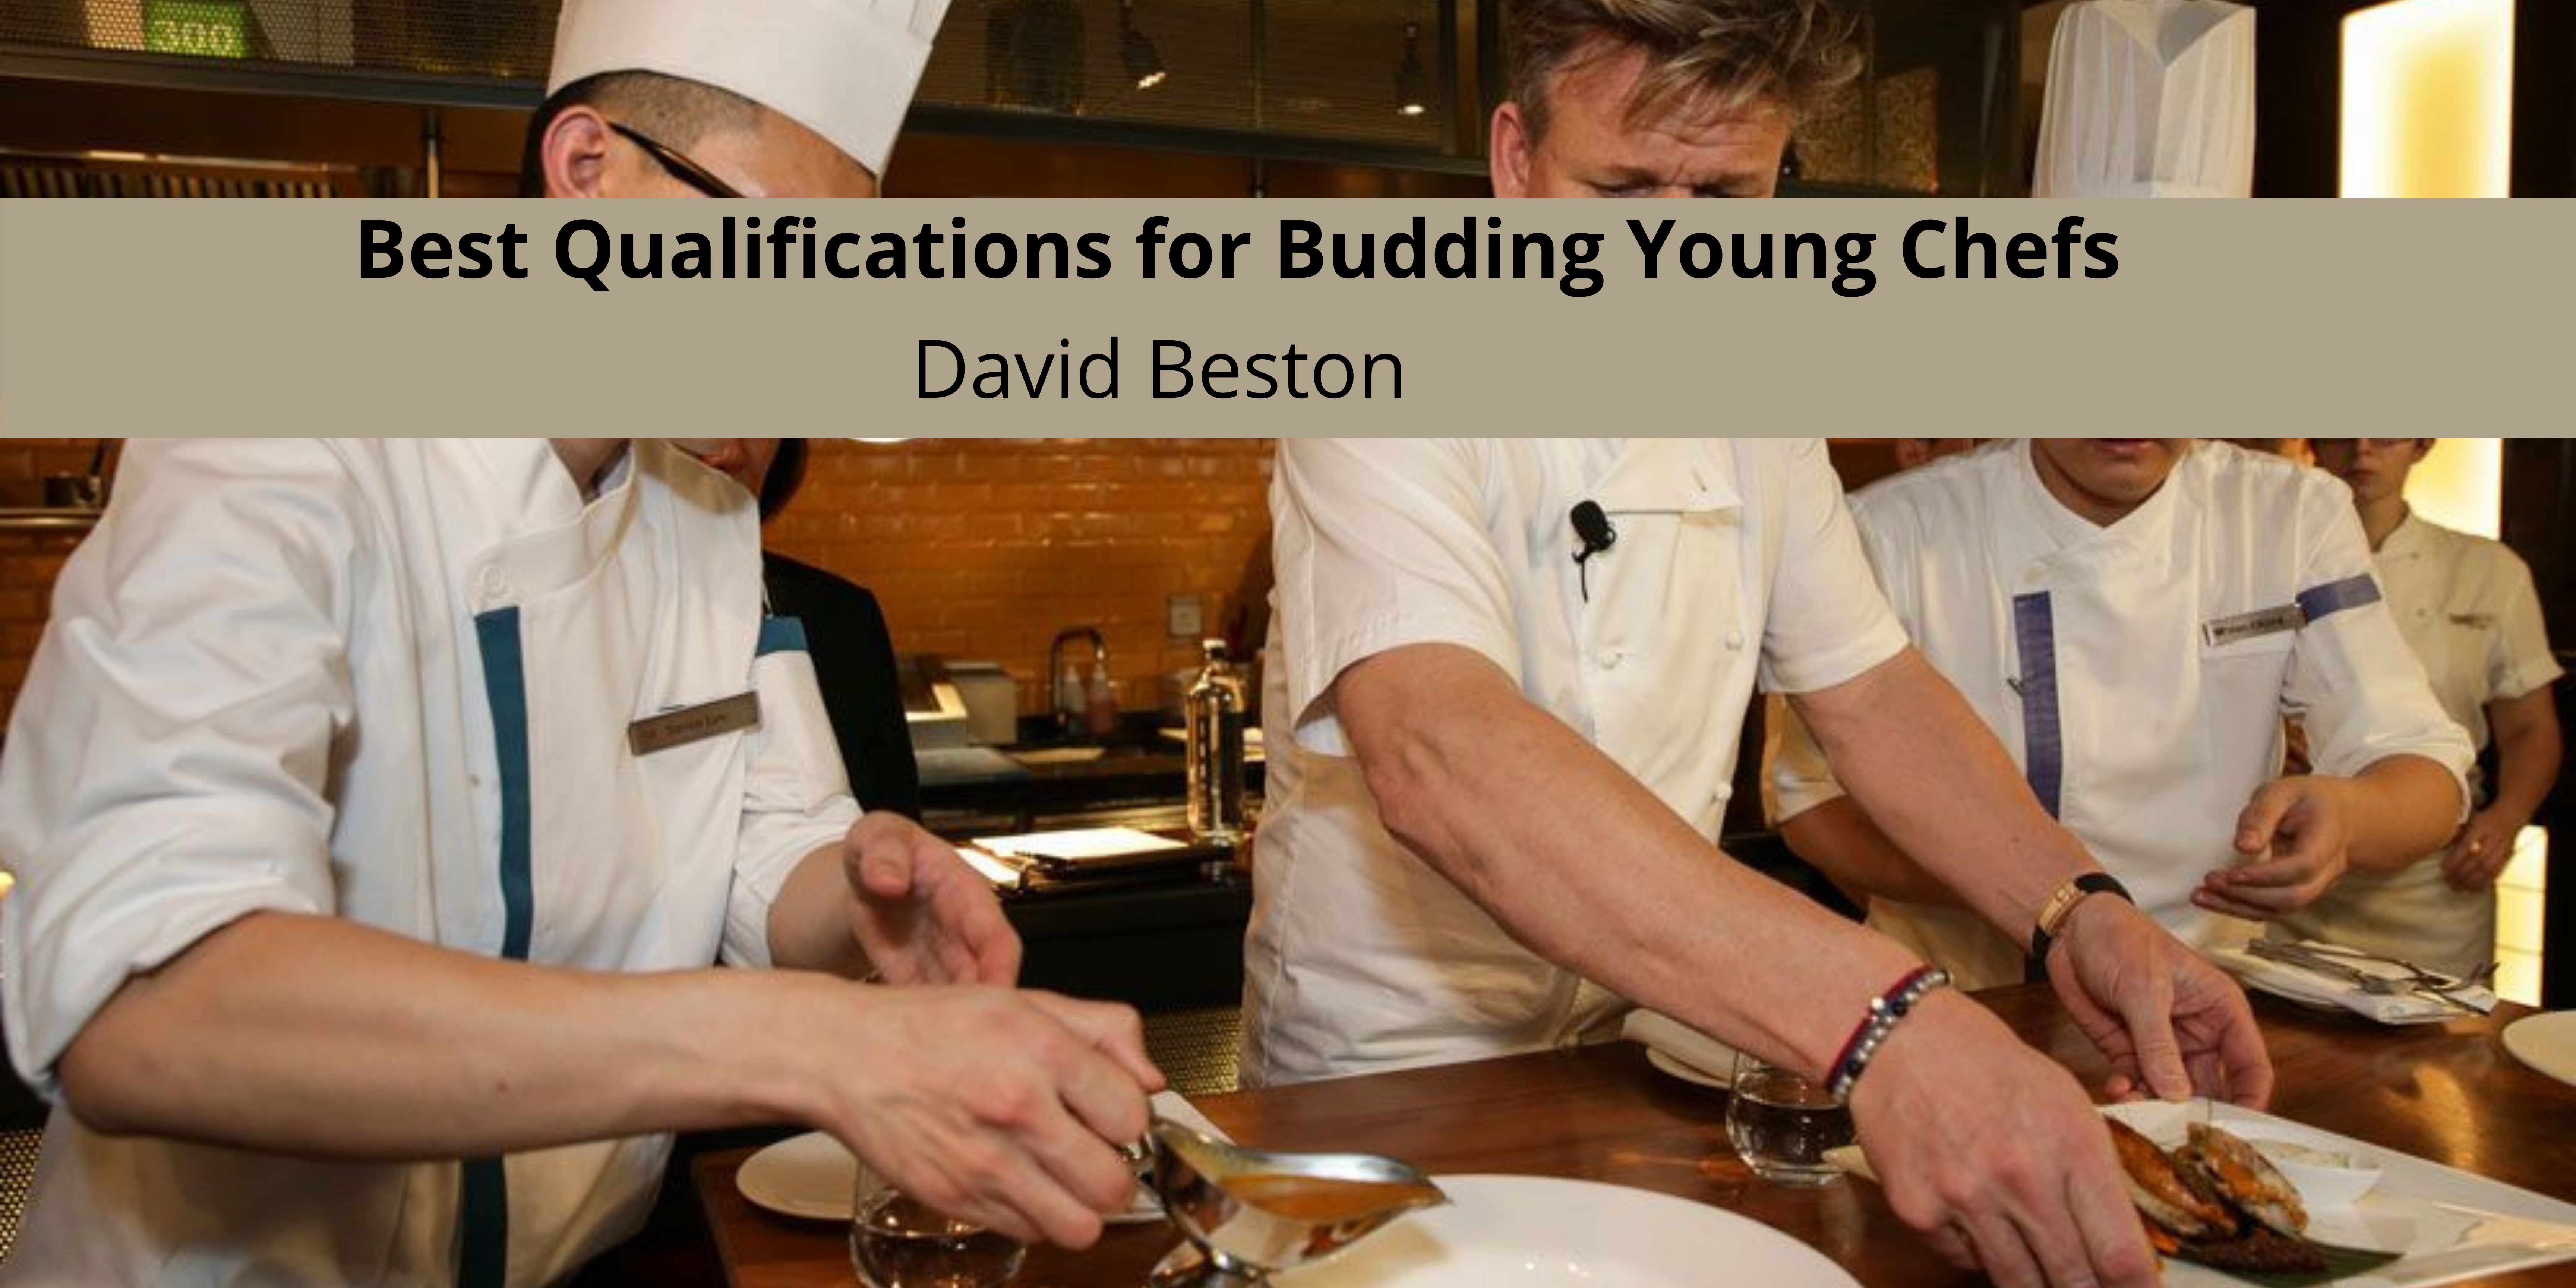 Best Qualifications for Budding Young Chefs